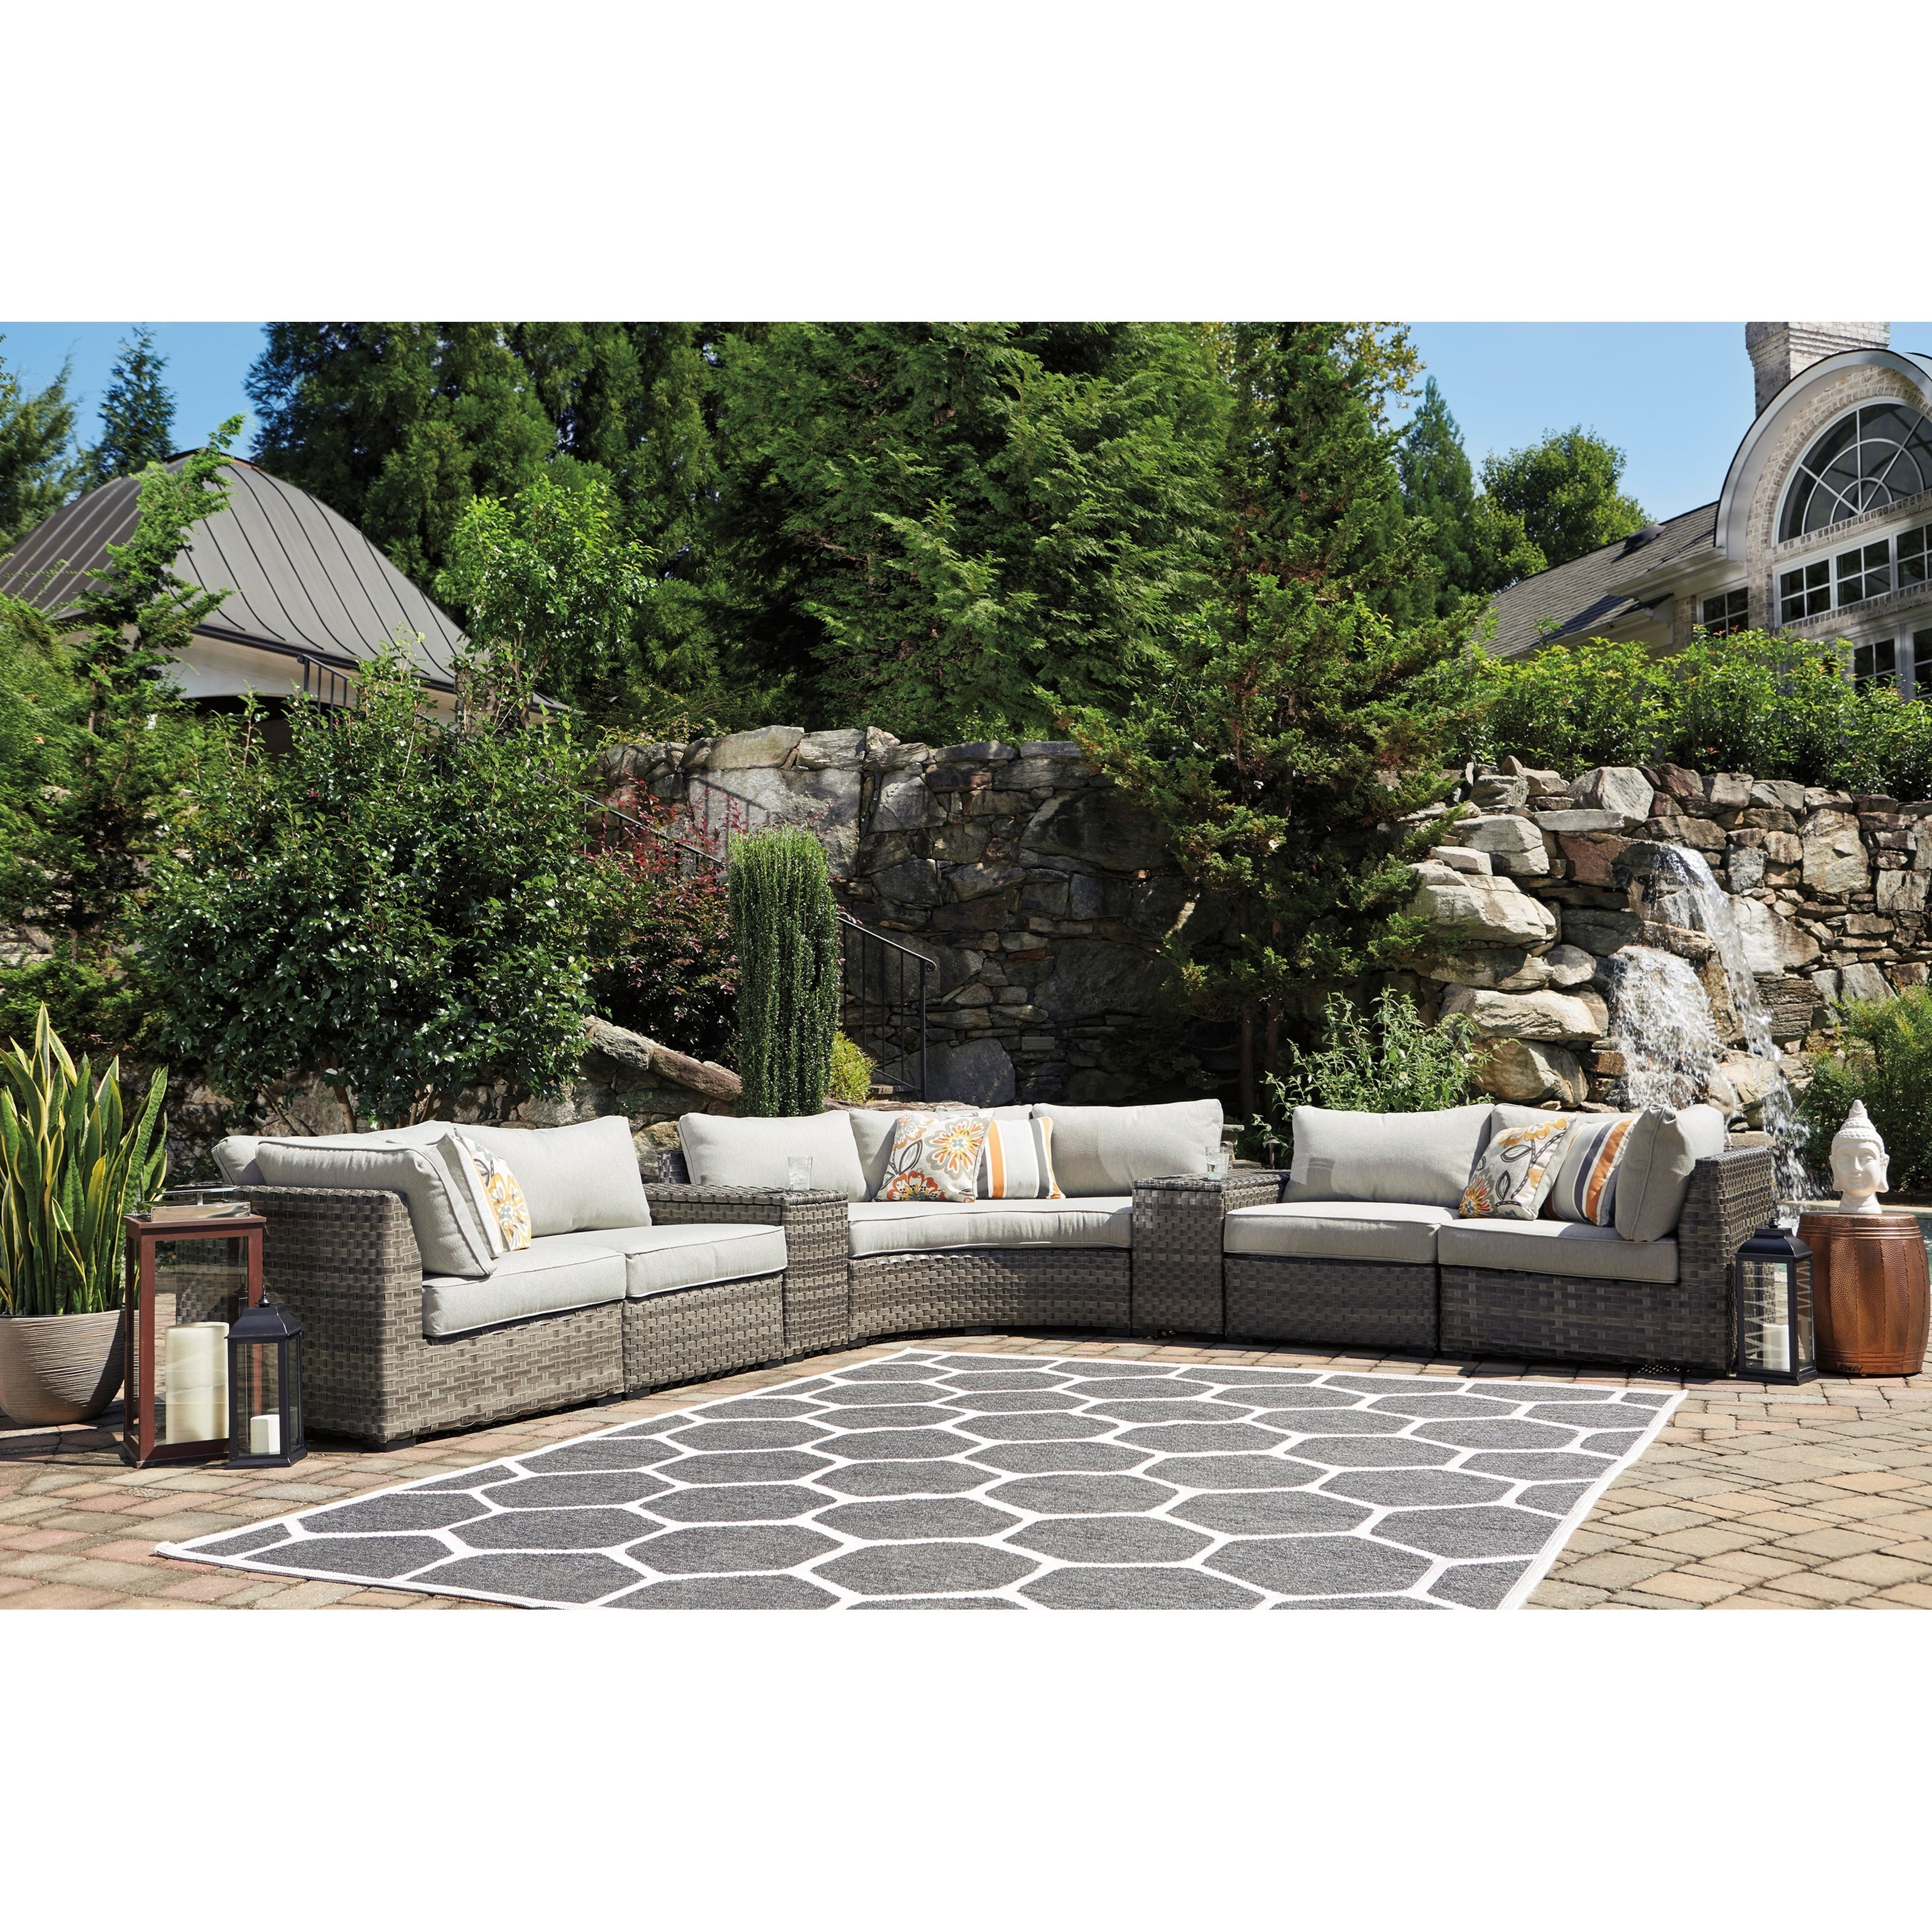 lexmod monterey outdoor wicker rattan sectional sofa set velvet fabric uk sofas mysterabbit com signature design by ashley spring dew 7 piece